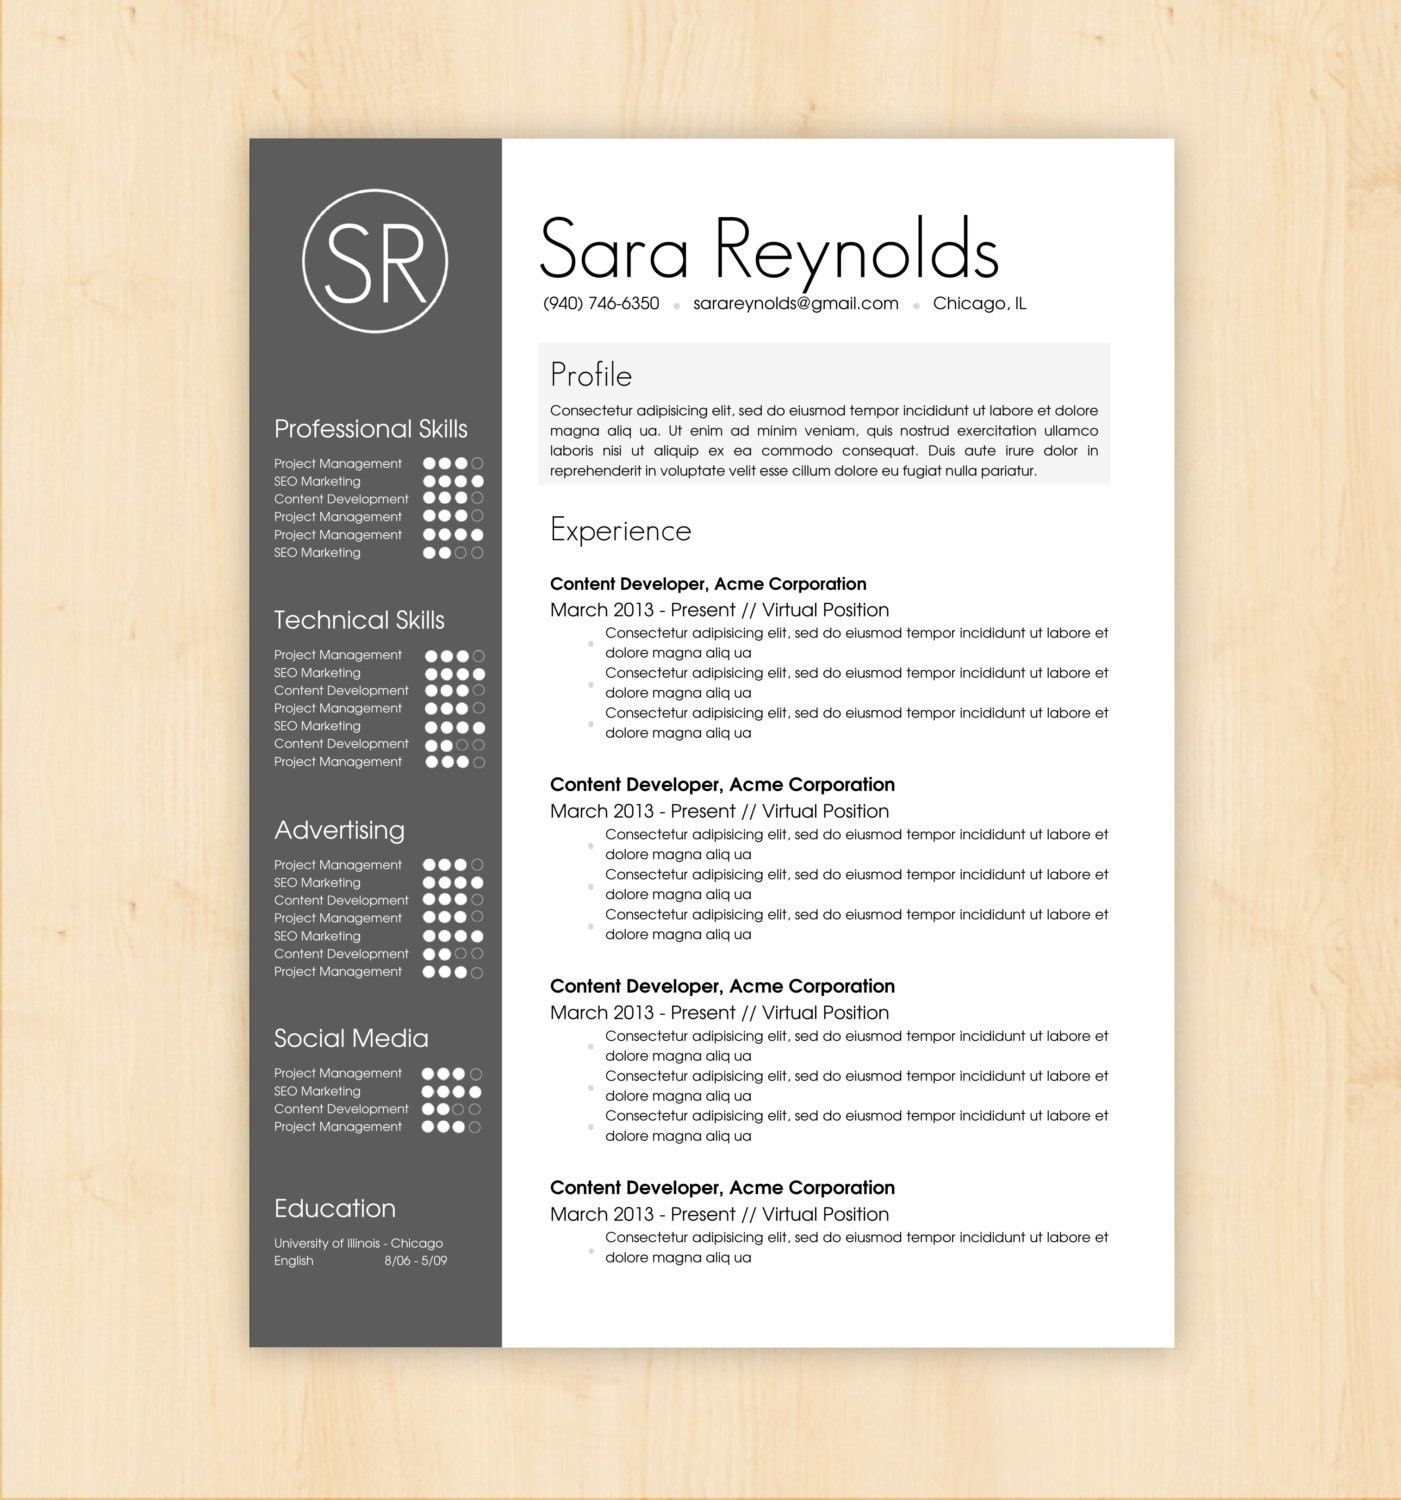 PreviousNext. Previous Image Next Image. Best Resume Designs